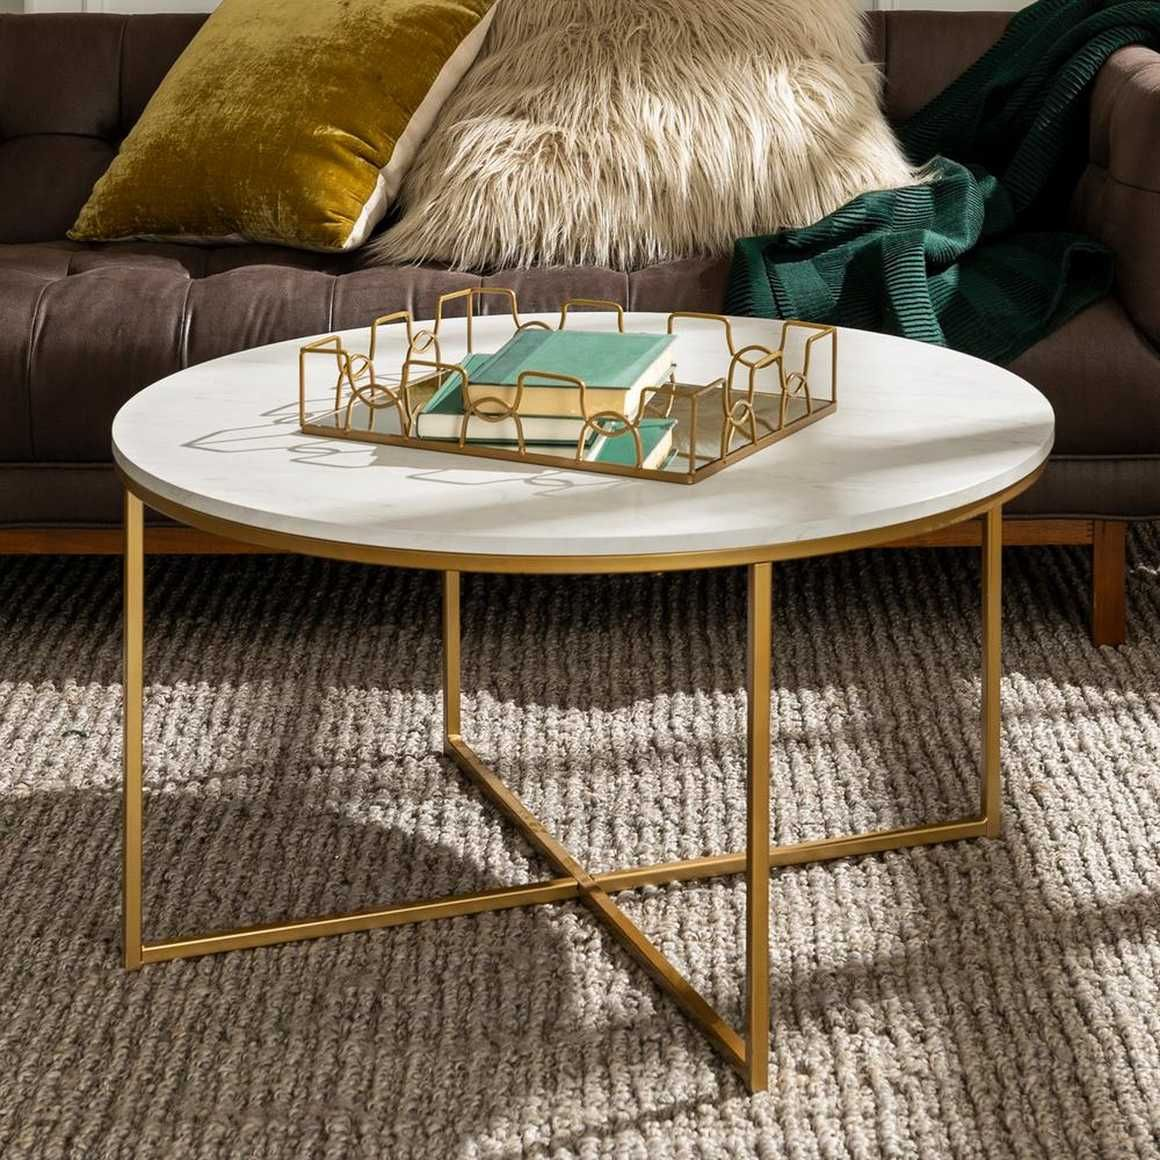 36 In Faux Marble Gold Coffee Table With X Base By Home Depot With Images Gold Coffee Table Upholstered Coffee Tables Coffee Table